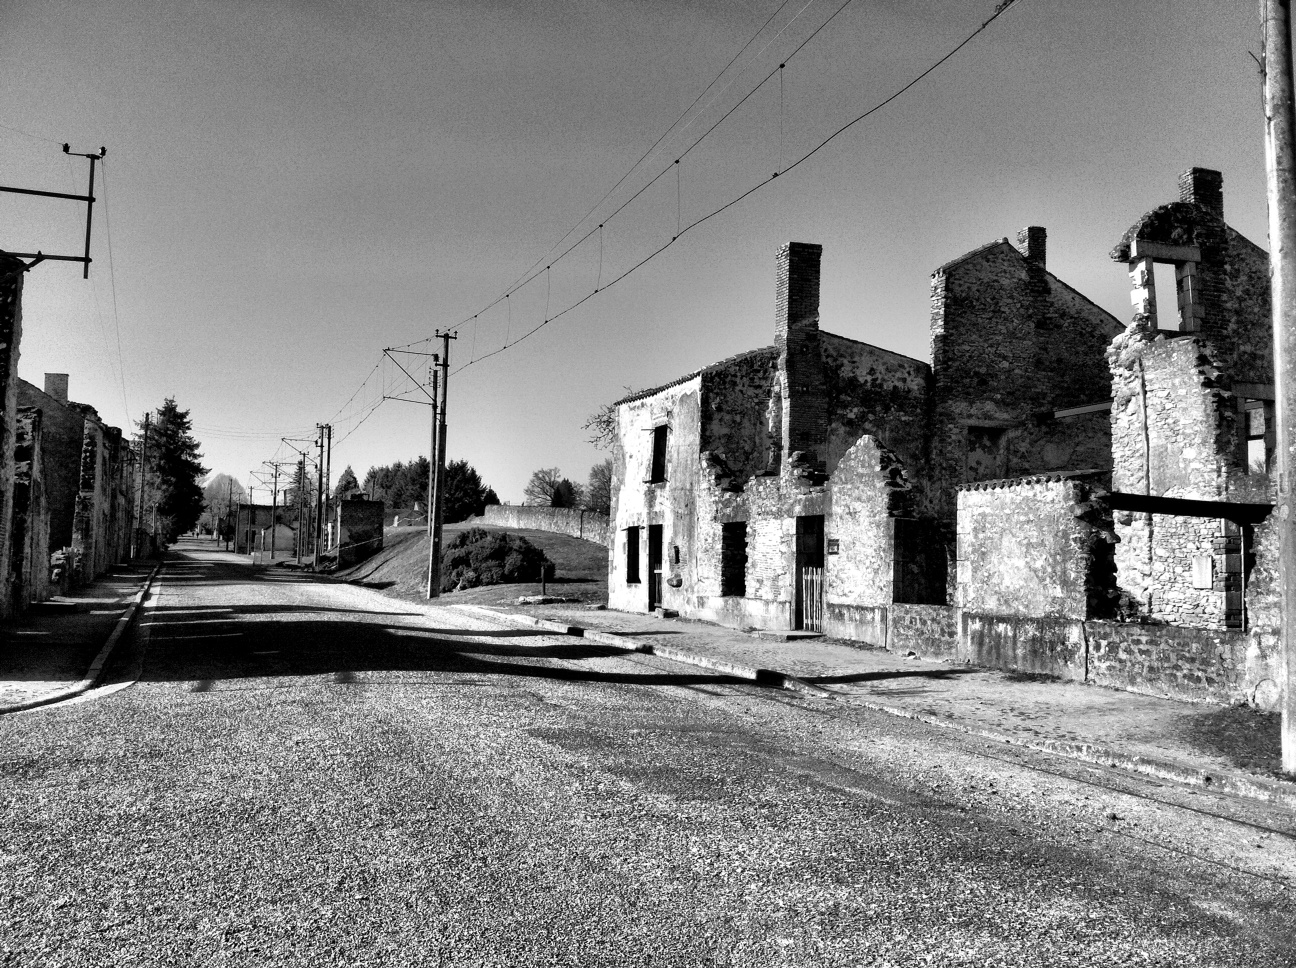 The Village of the Dead – Oradour-sur-Glane